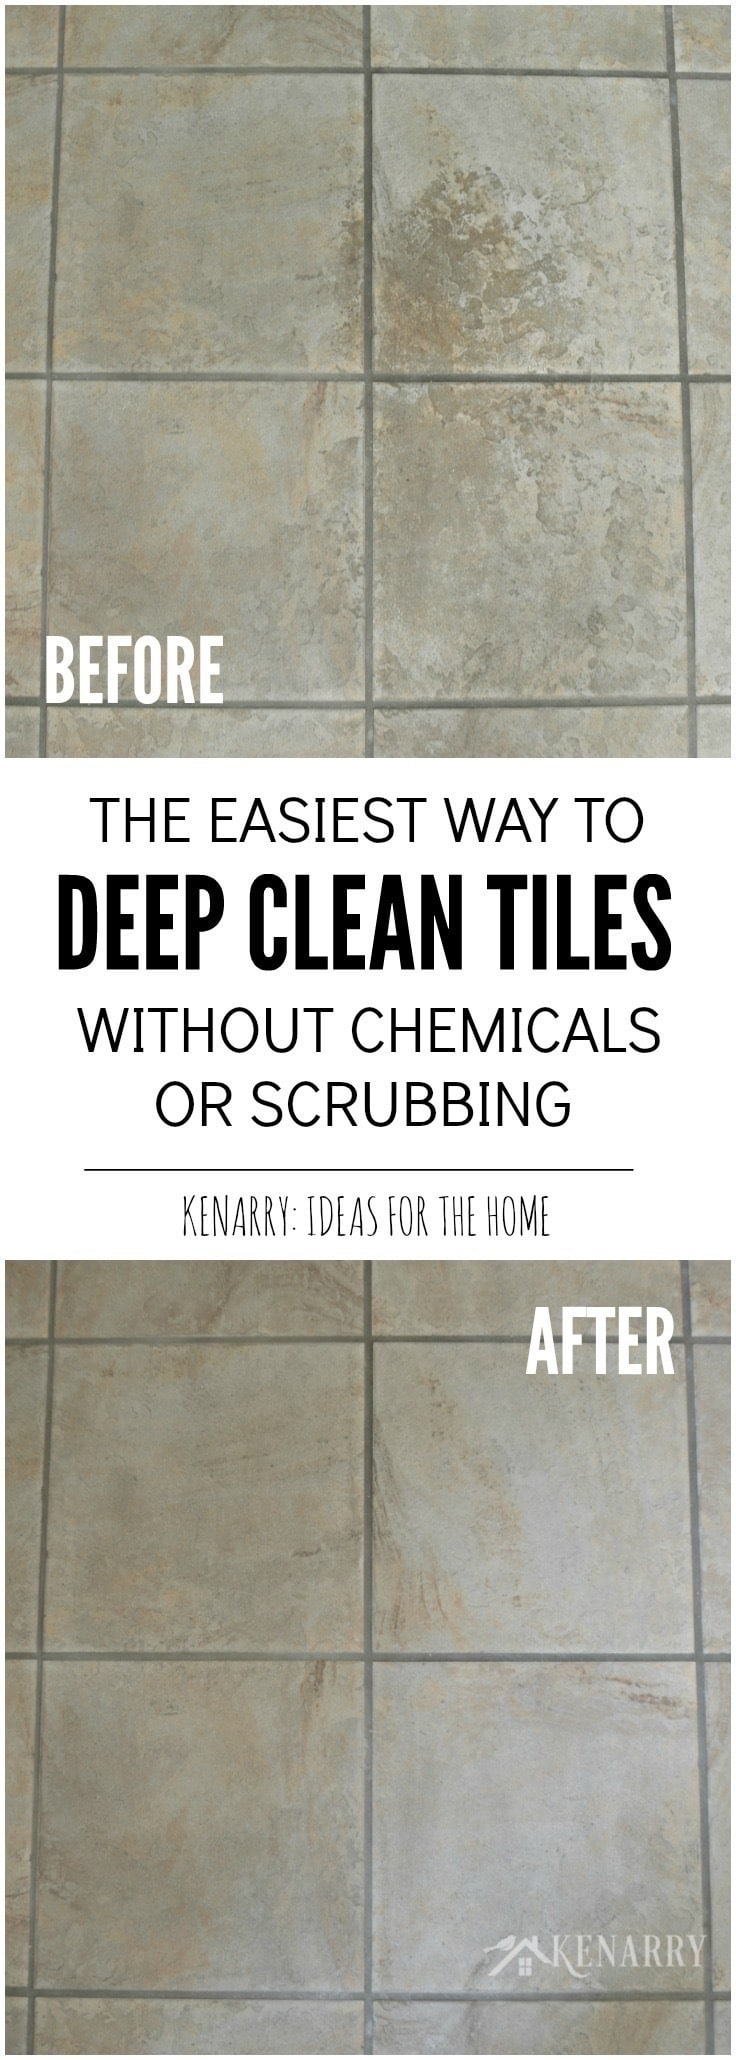 Clean tile floors easily without chemicals or scrubbing i love this easy idea for how to clean tile floors quickly and easily dailygadgetfo Gallery